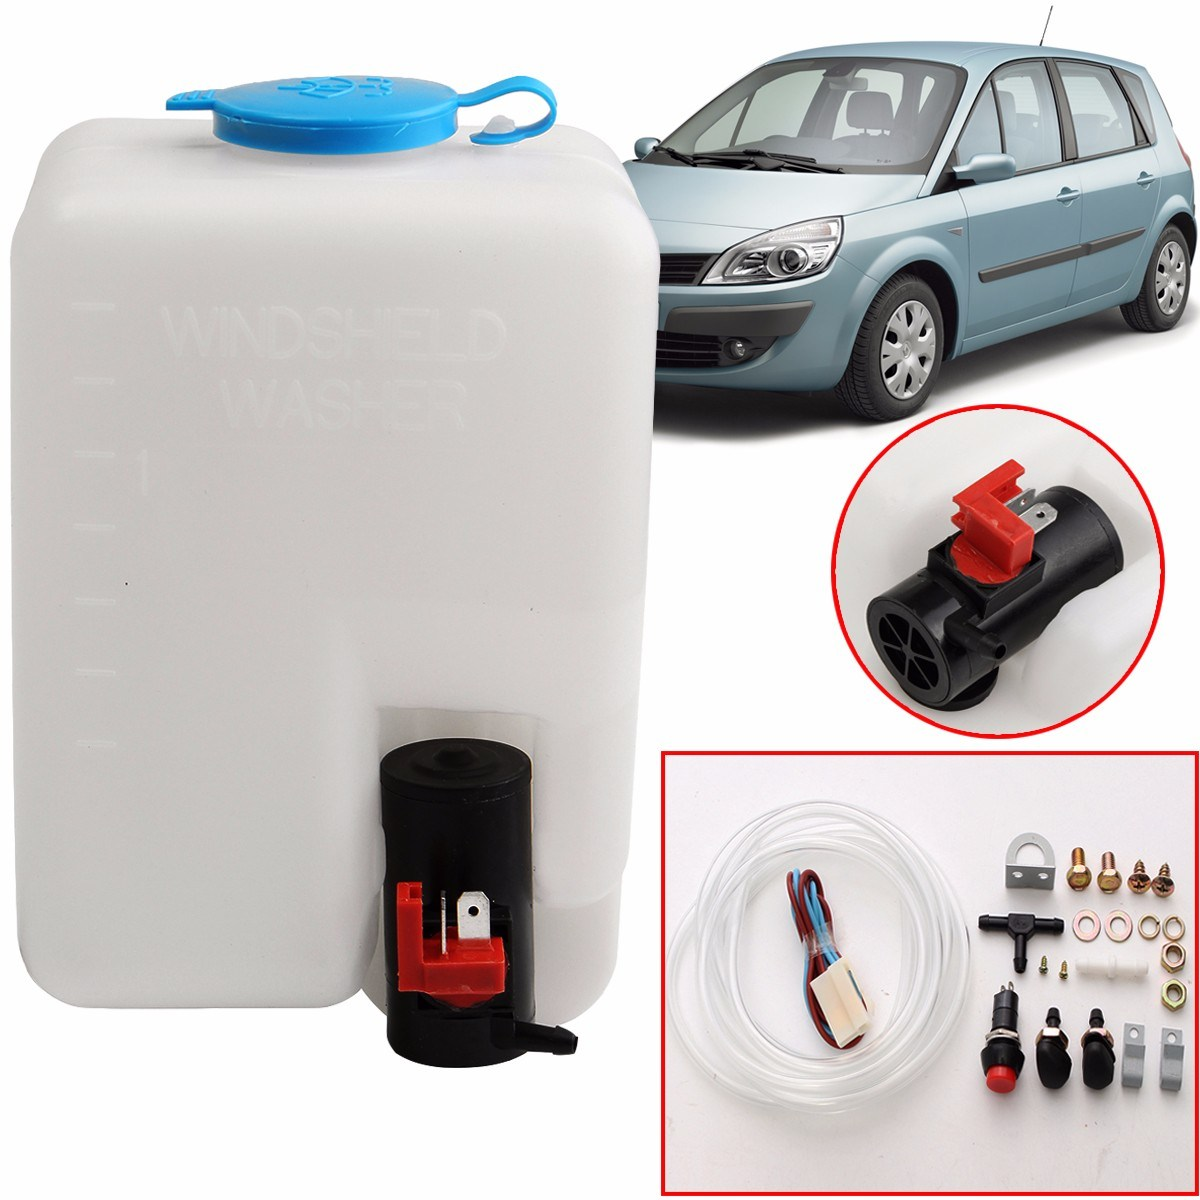 12v 18l Car Windshield Washer Reservoir Pump Bottle Kit Jet Switch Hyundai 1 8l Engine For Universal Classic Cars In Windshields From Automobiles Motorcycles On